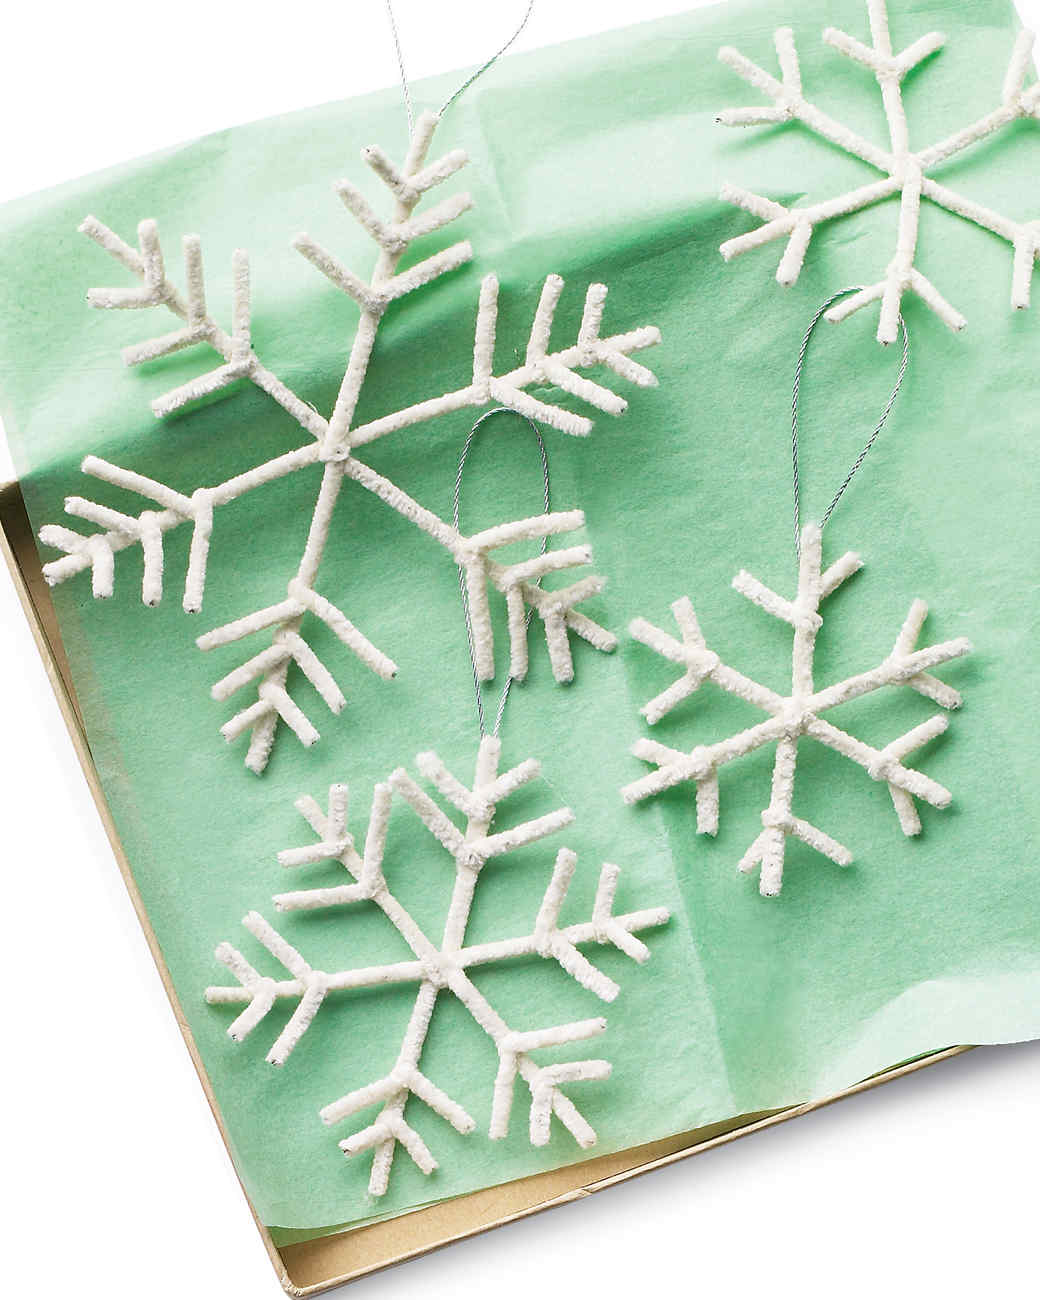 Exceptional Martha Stewart Christmas Craft Ideas Part - 9: Pipe-Cleaner Snowflake Ornament